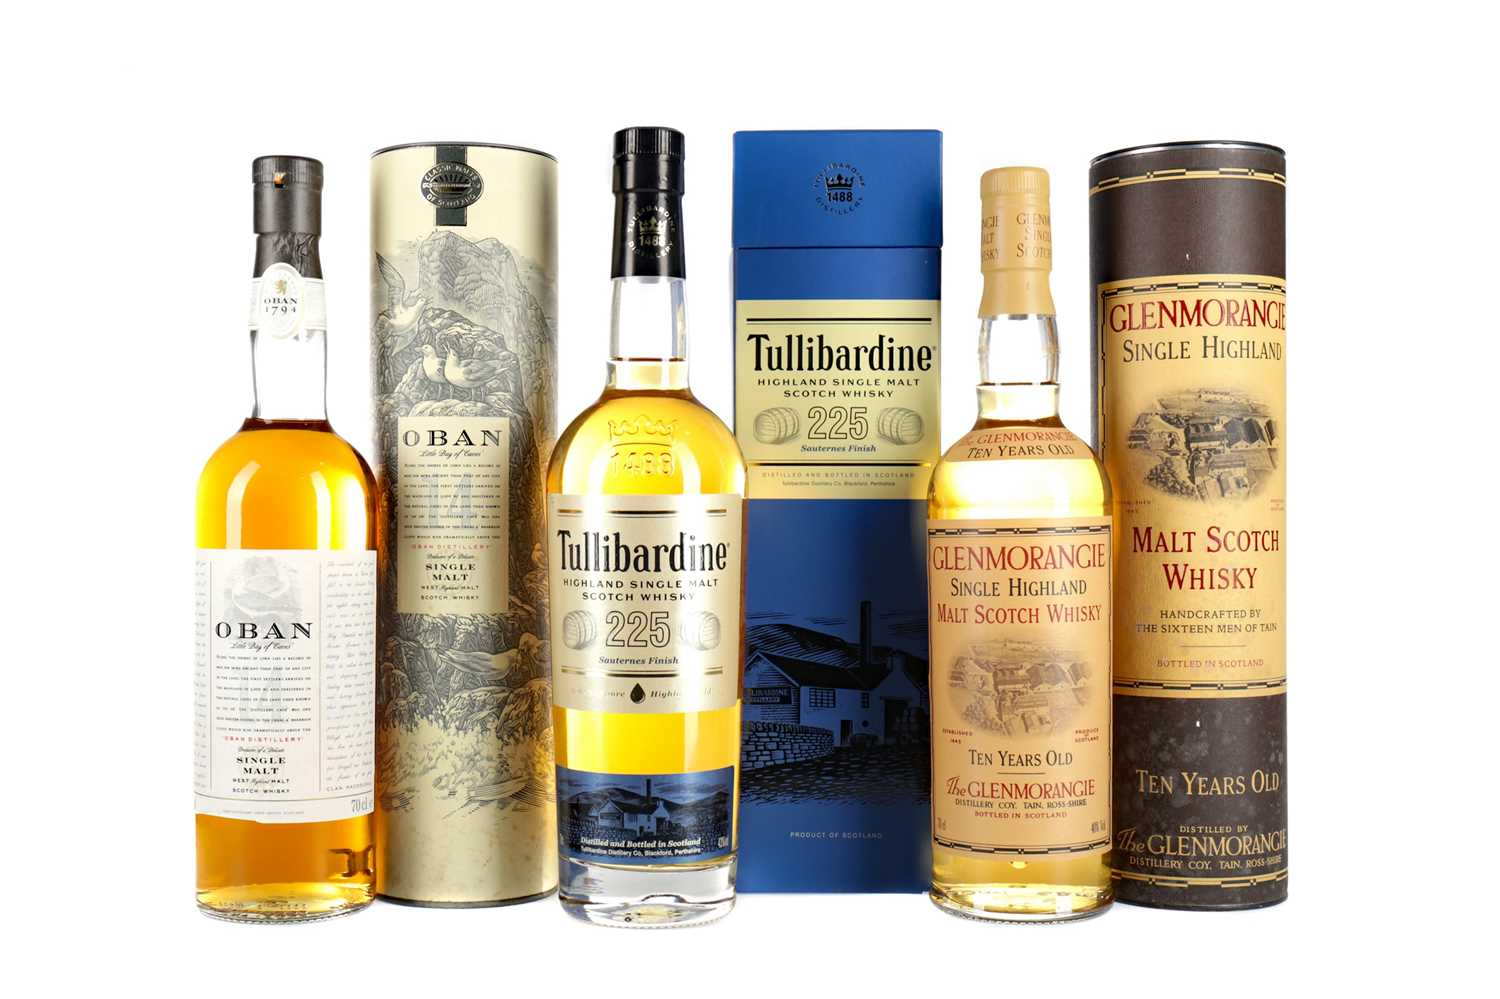 Lot 59 - TULLIBARDINE 225 SAUTERNES FINISH, OBAN AGED 14 YEARS, AND GLENMORANGIE 10 YEARS OLD